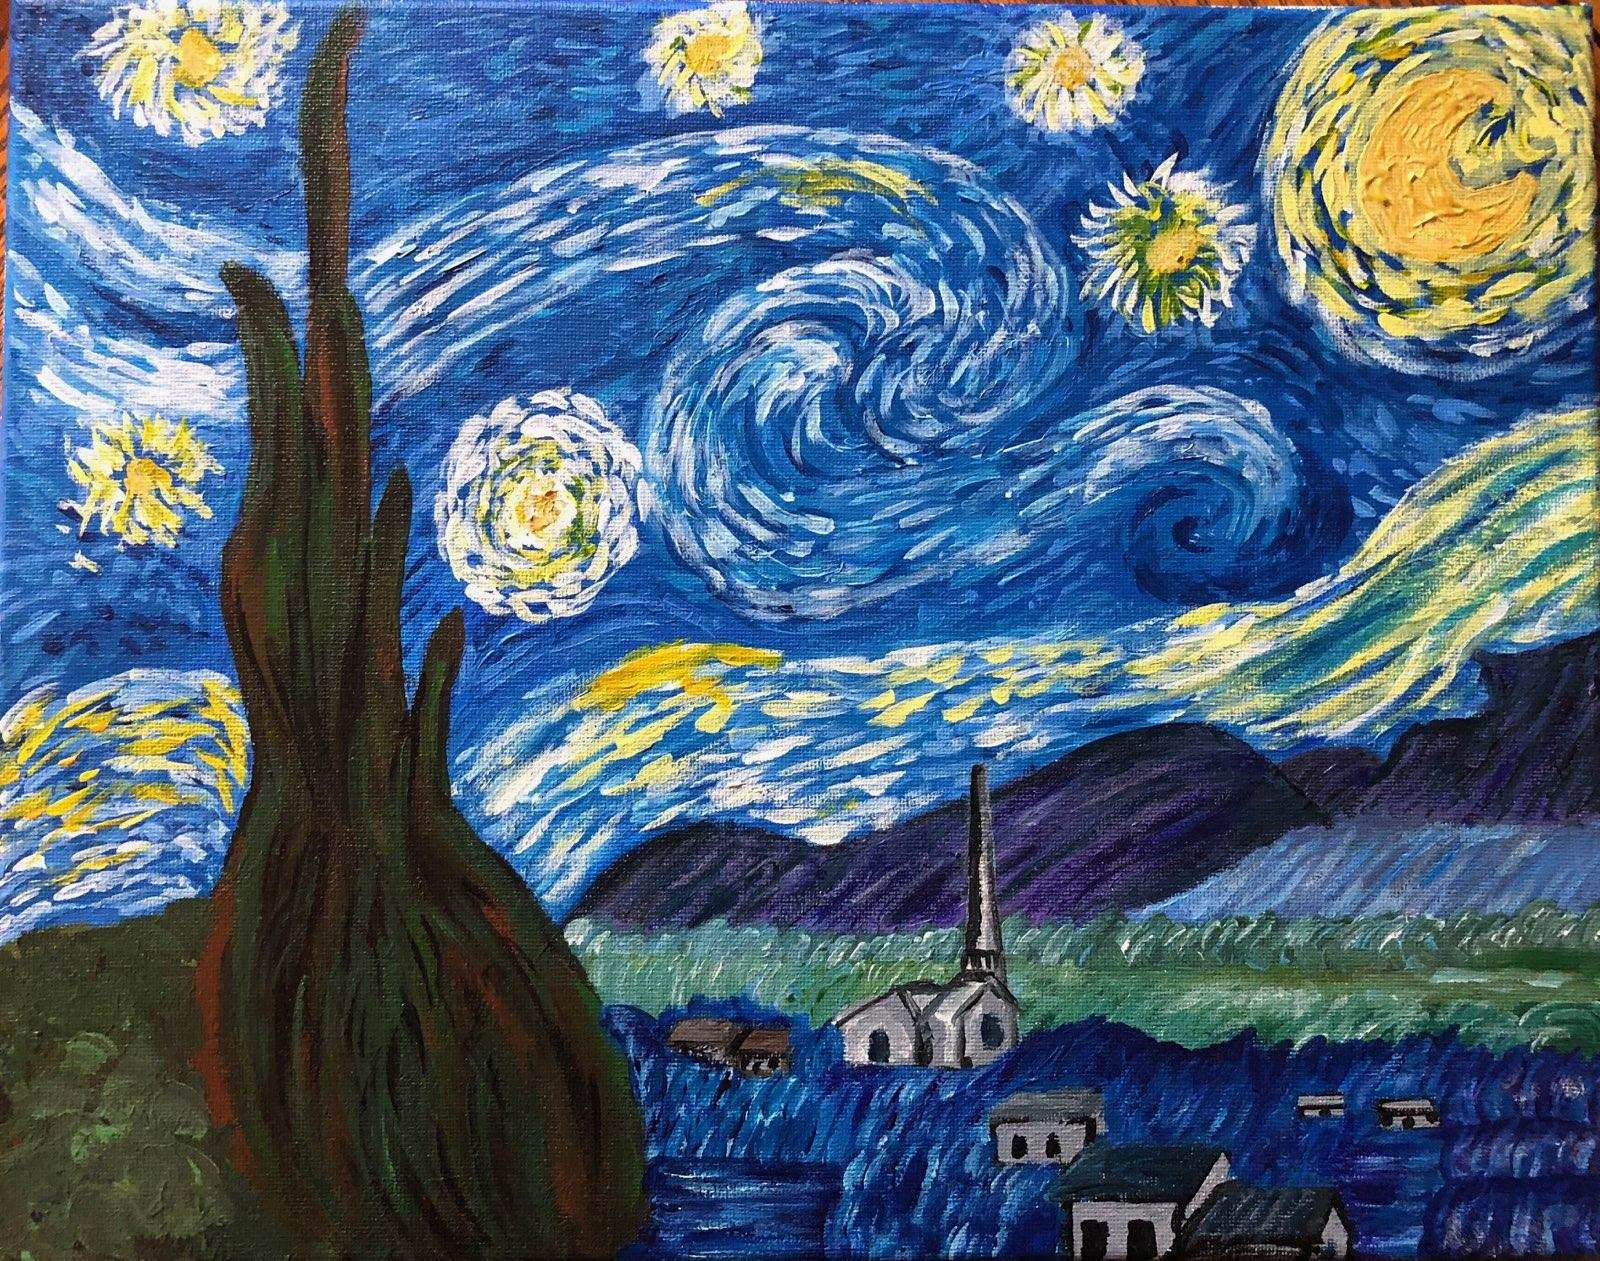 Rendition of Van Gogh's Starry Night by Mary